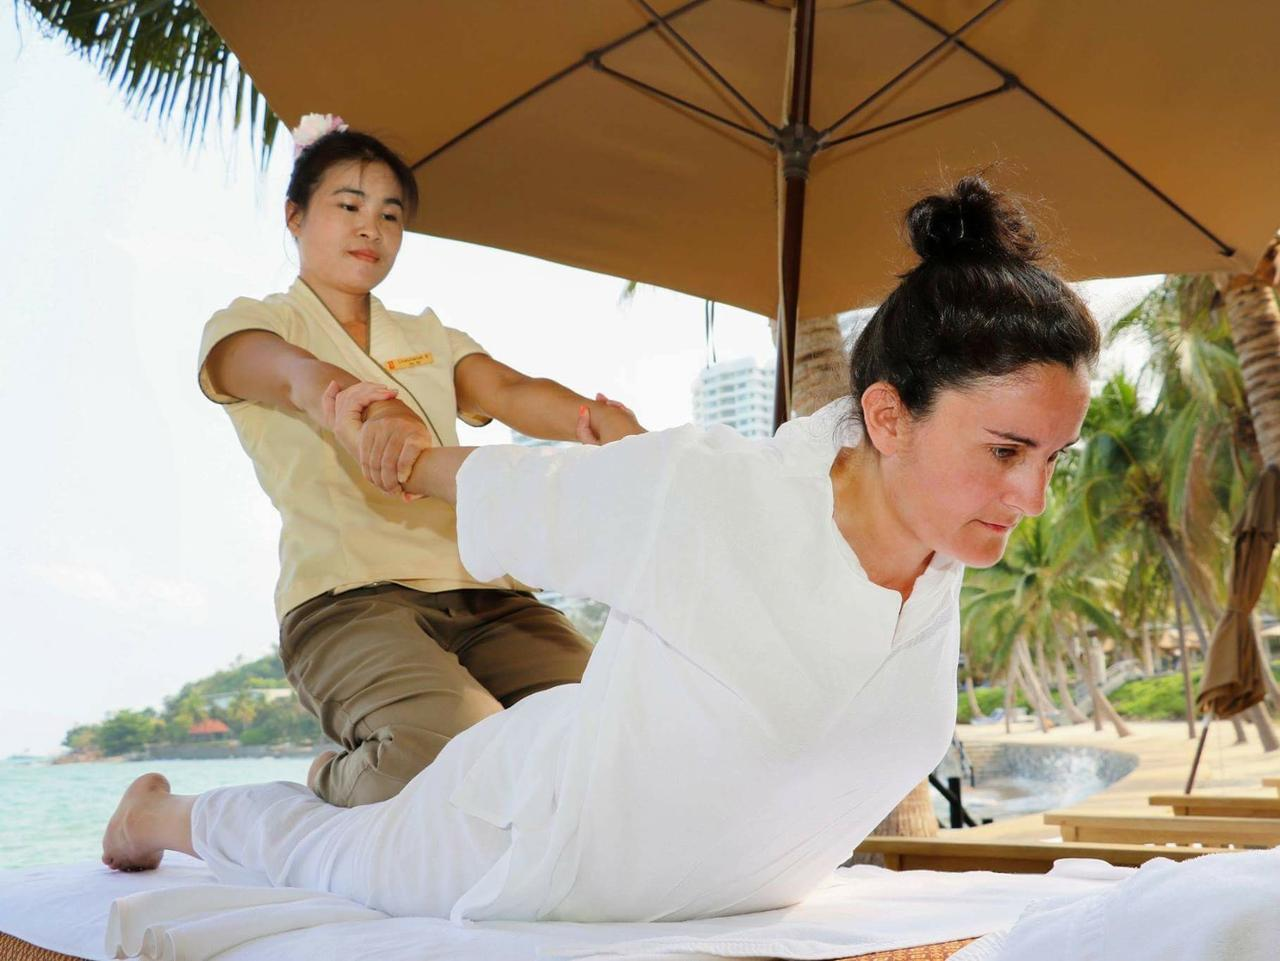 Supplied Travel MERC WELLNESS Thai massage at Royal Wing Suites & Spa i Pattaya, Thailand